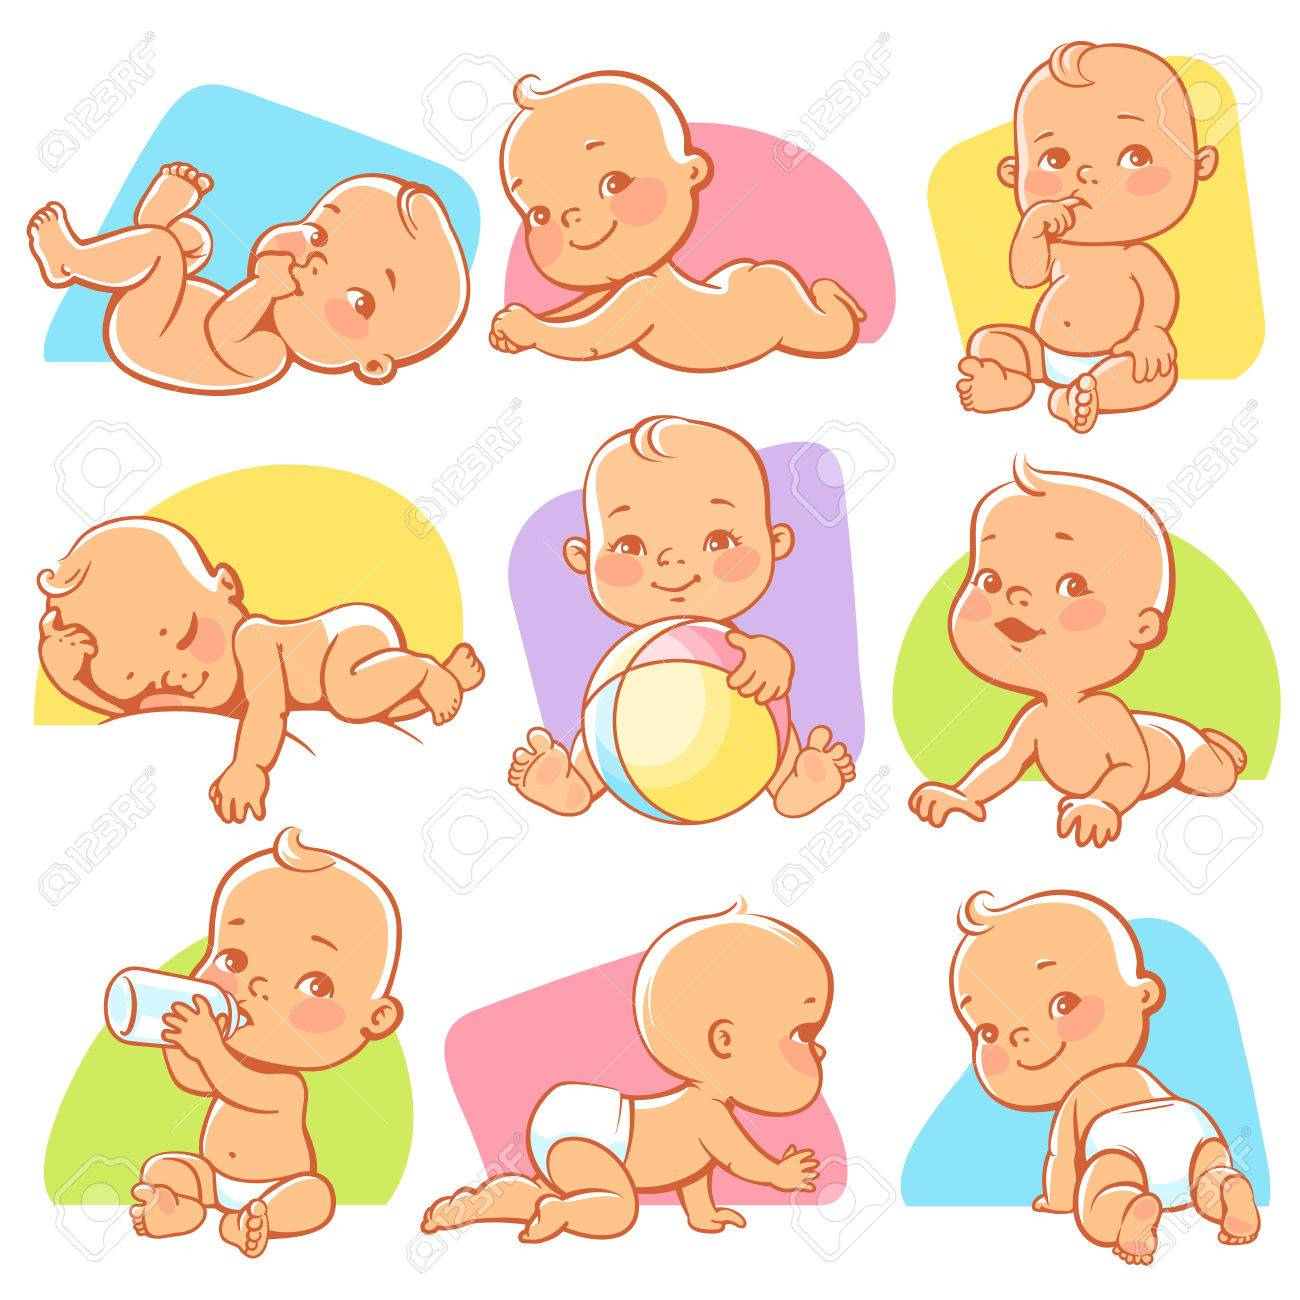 Set with cute little baby in different situations. Playing, sleeping, sitting, lying, crawling baby. Happy smiling newborn boy or girl. Vector illustration. - 76301825